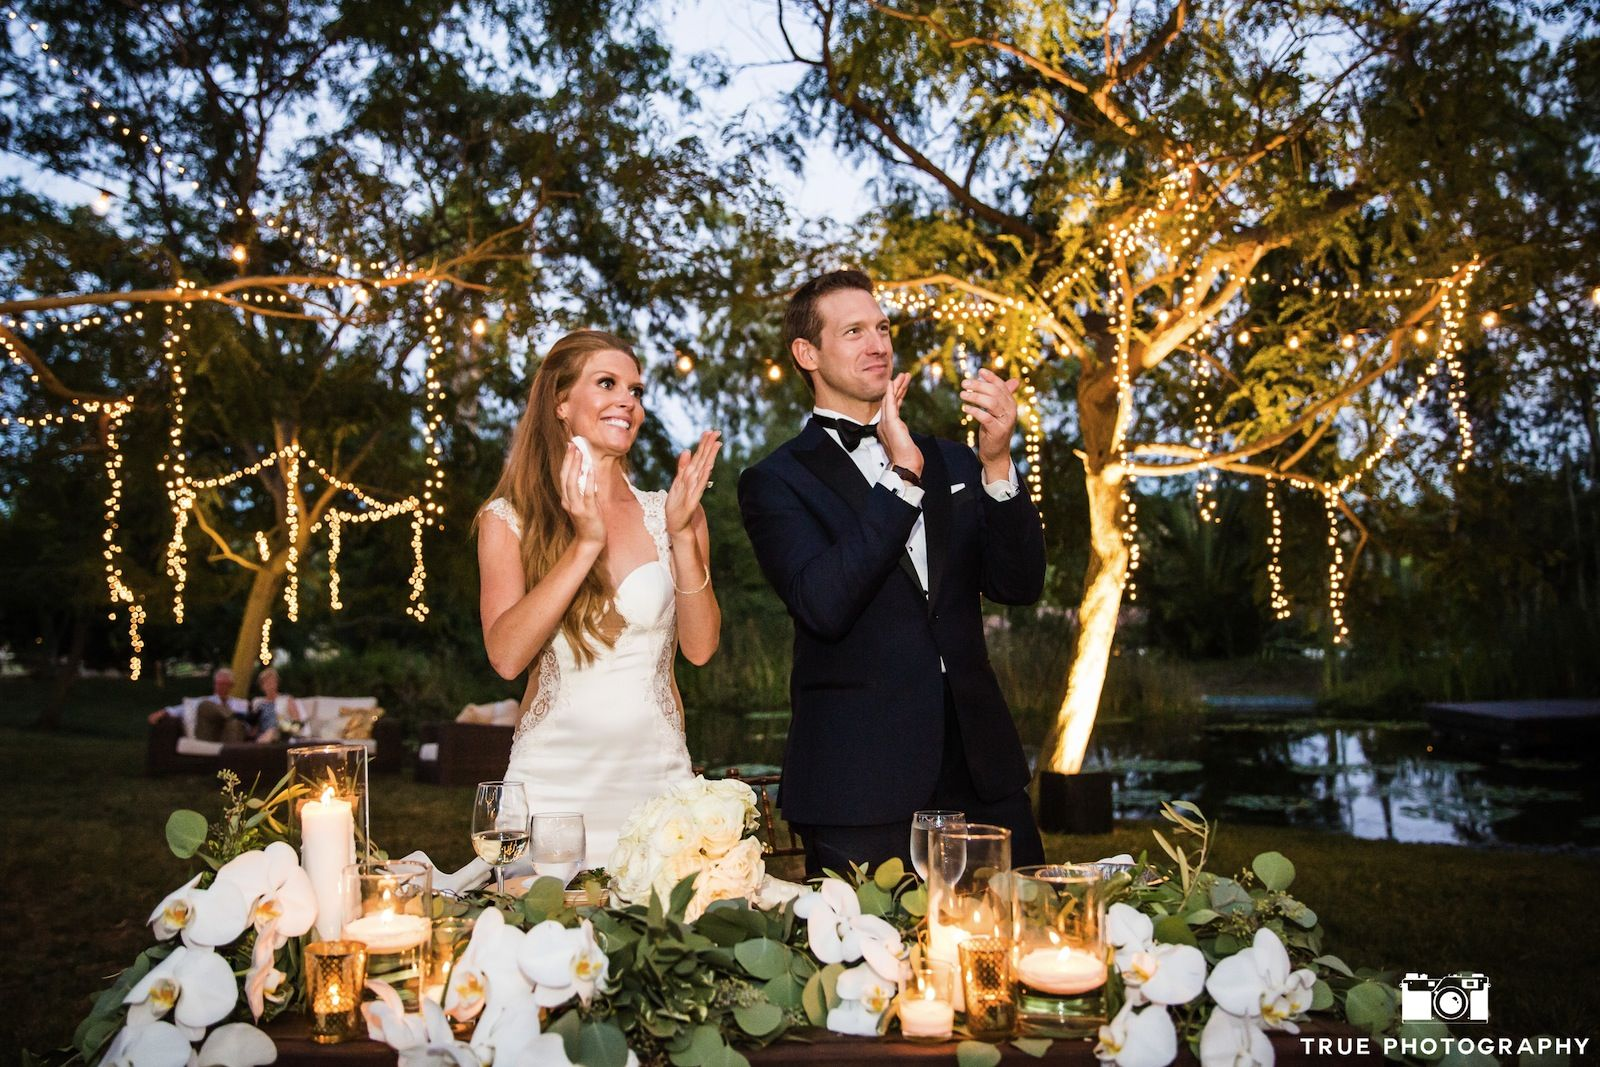 Perfect Whimsical Backyard Wedding At The Sanctuary Estate | Rancho Santa Fe  California Wedding And Event Venue | Venuelust | Estate Venues | Pinterest  | Backyard ...